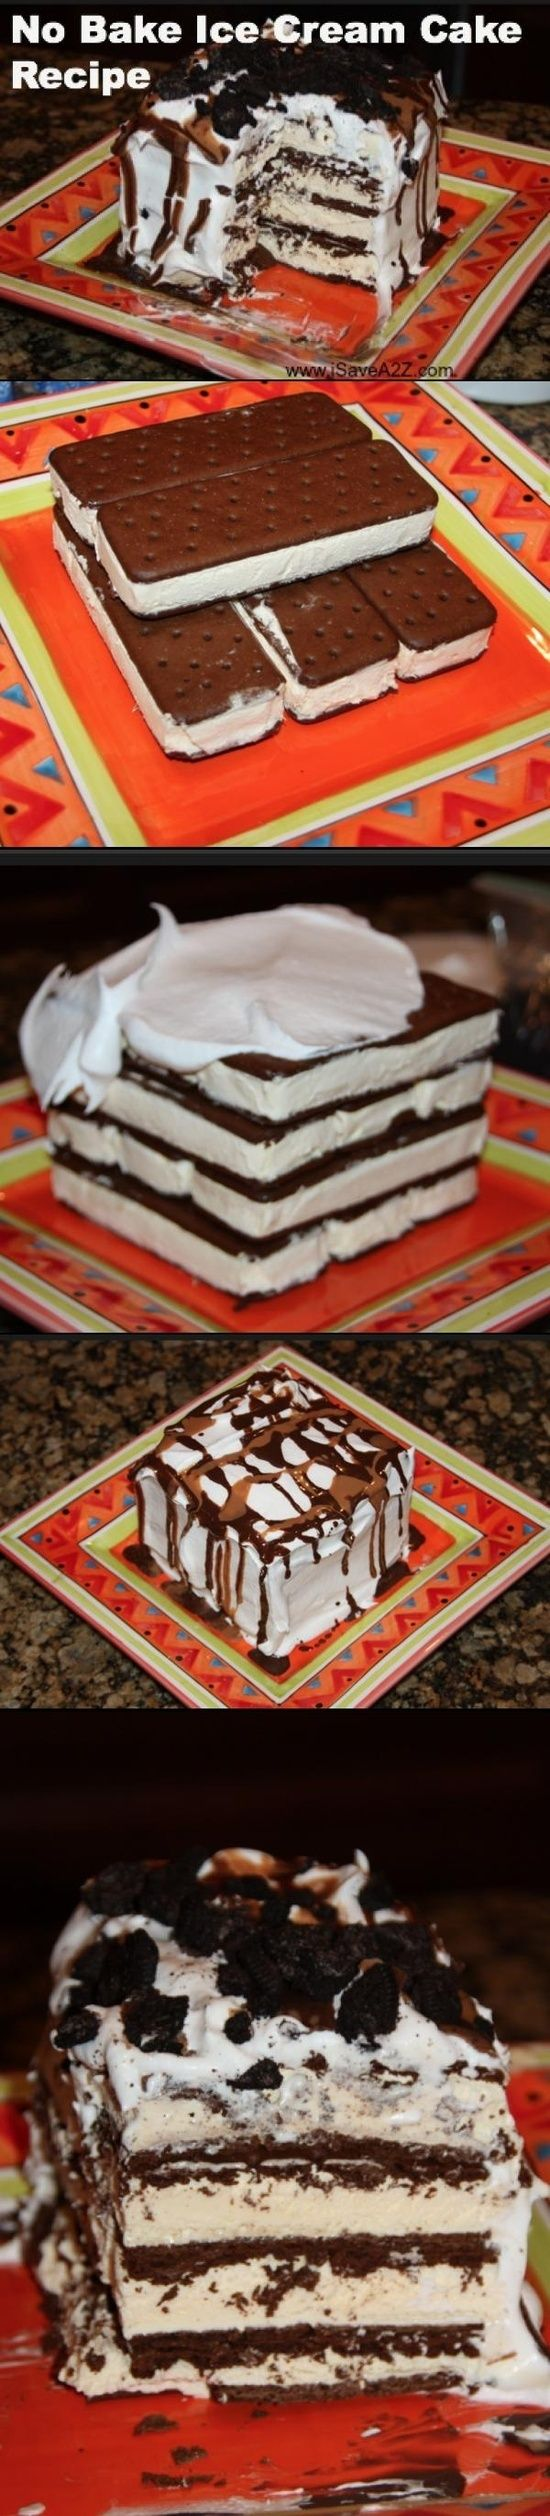 EZ Ice Cream cake! You could always add a layer of peanut butter, caramel, chocolate fudge or Nutella between the sandwiches for variations.